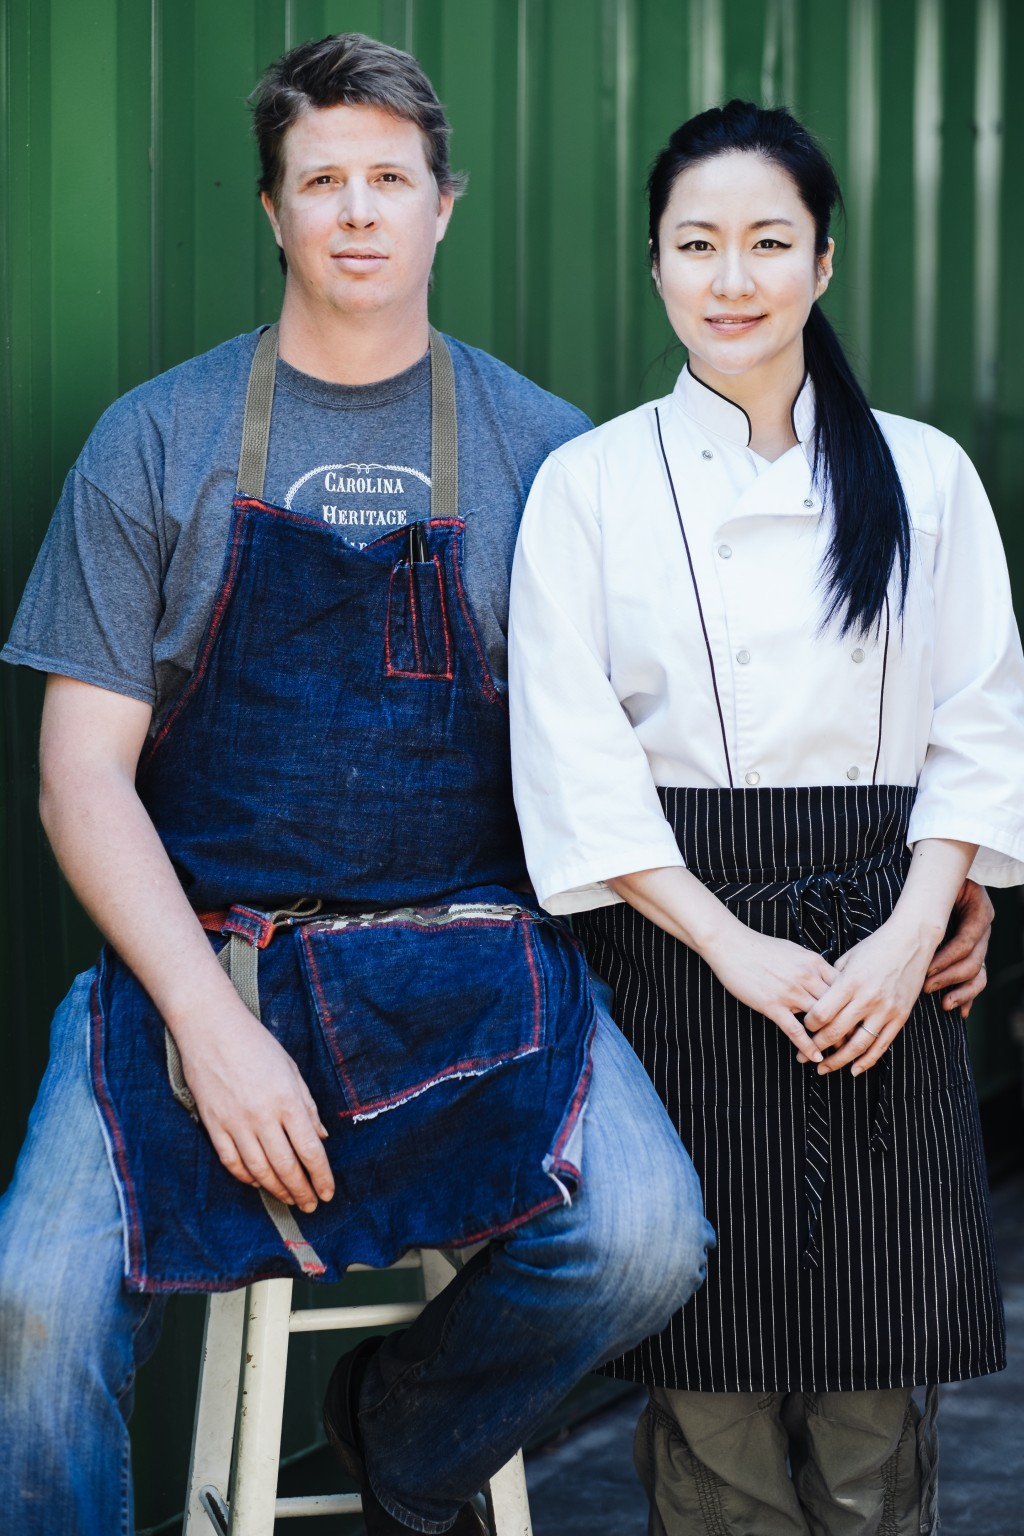 Chefs Cody Taylor and Jiyeon Lee